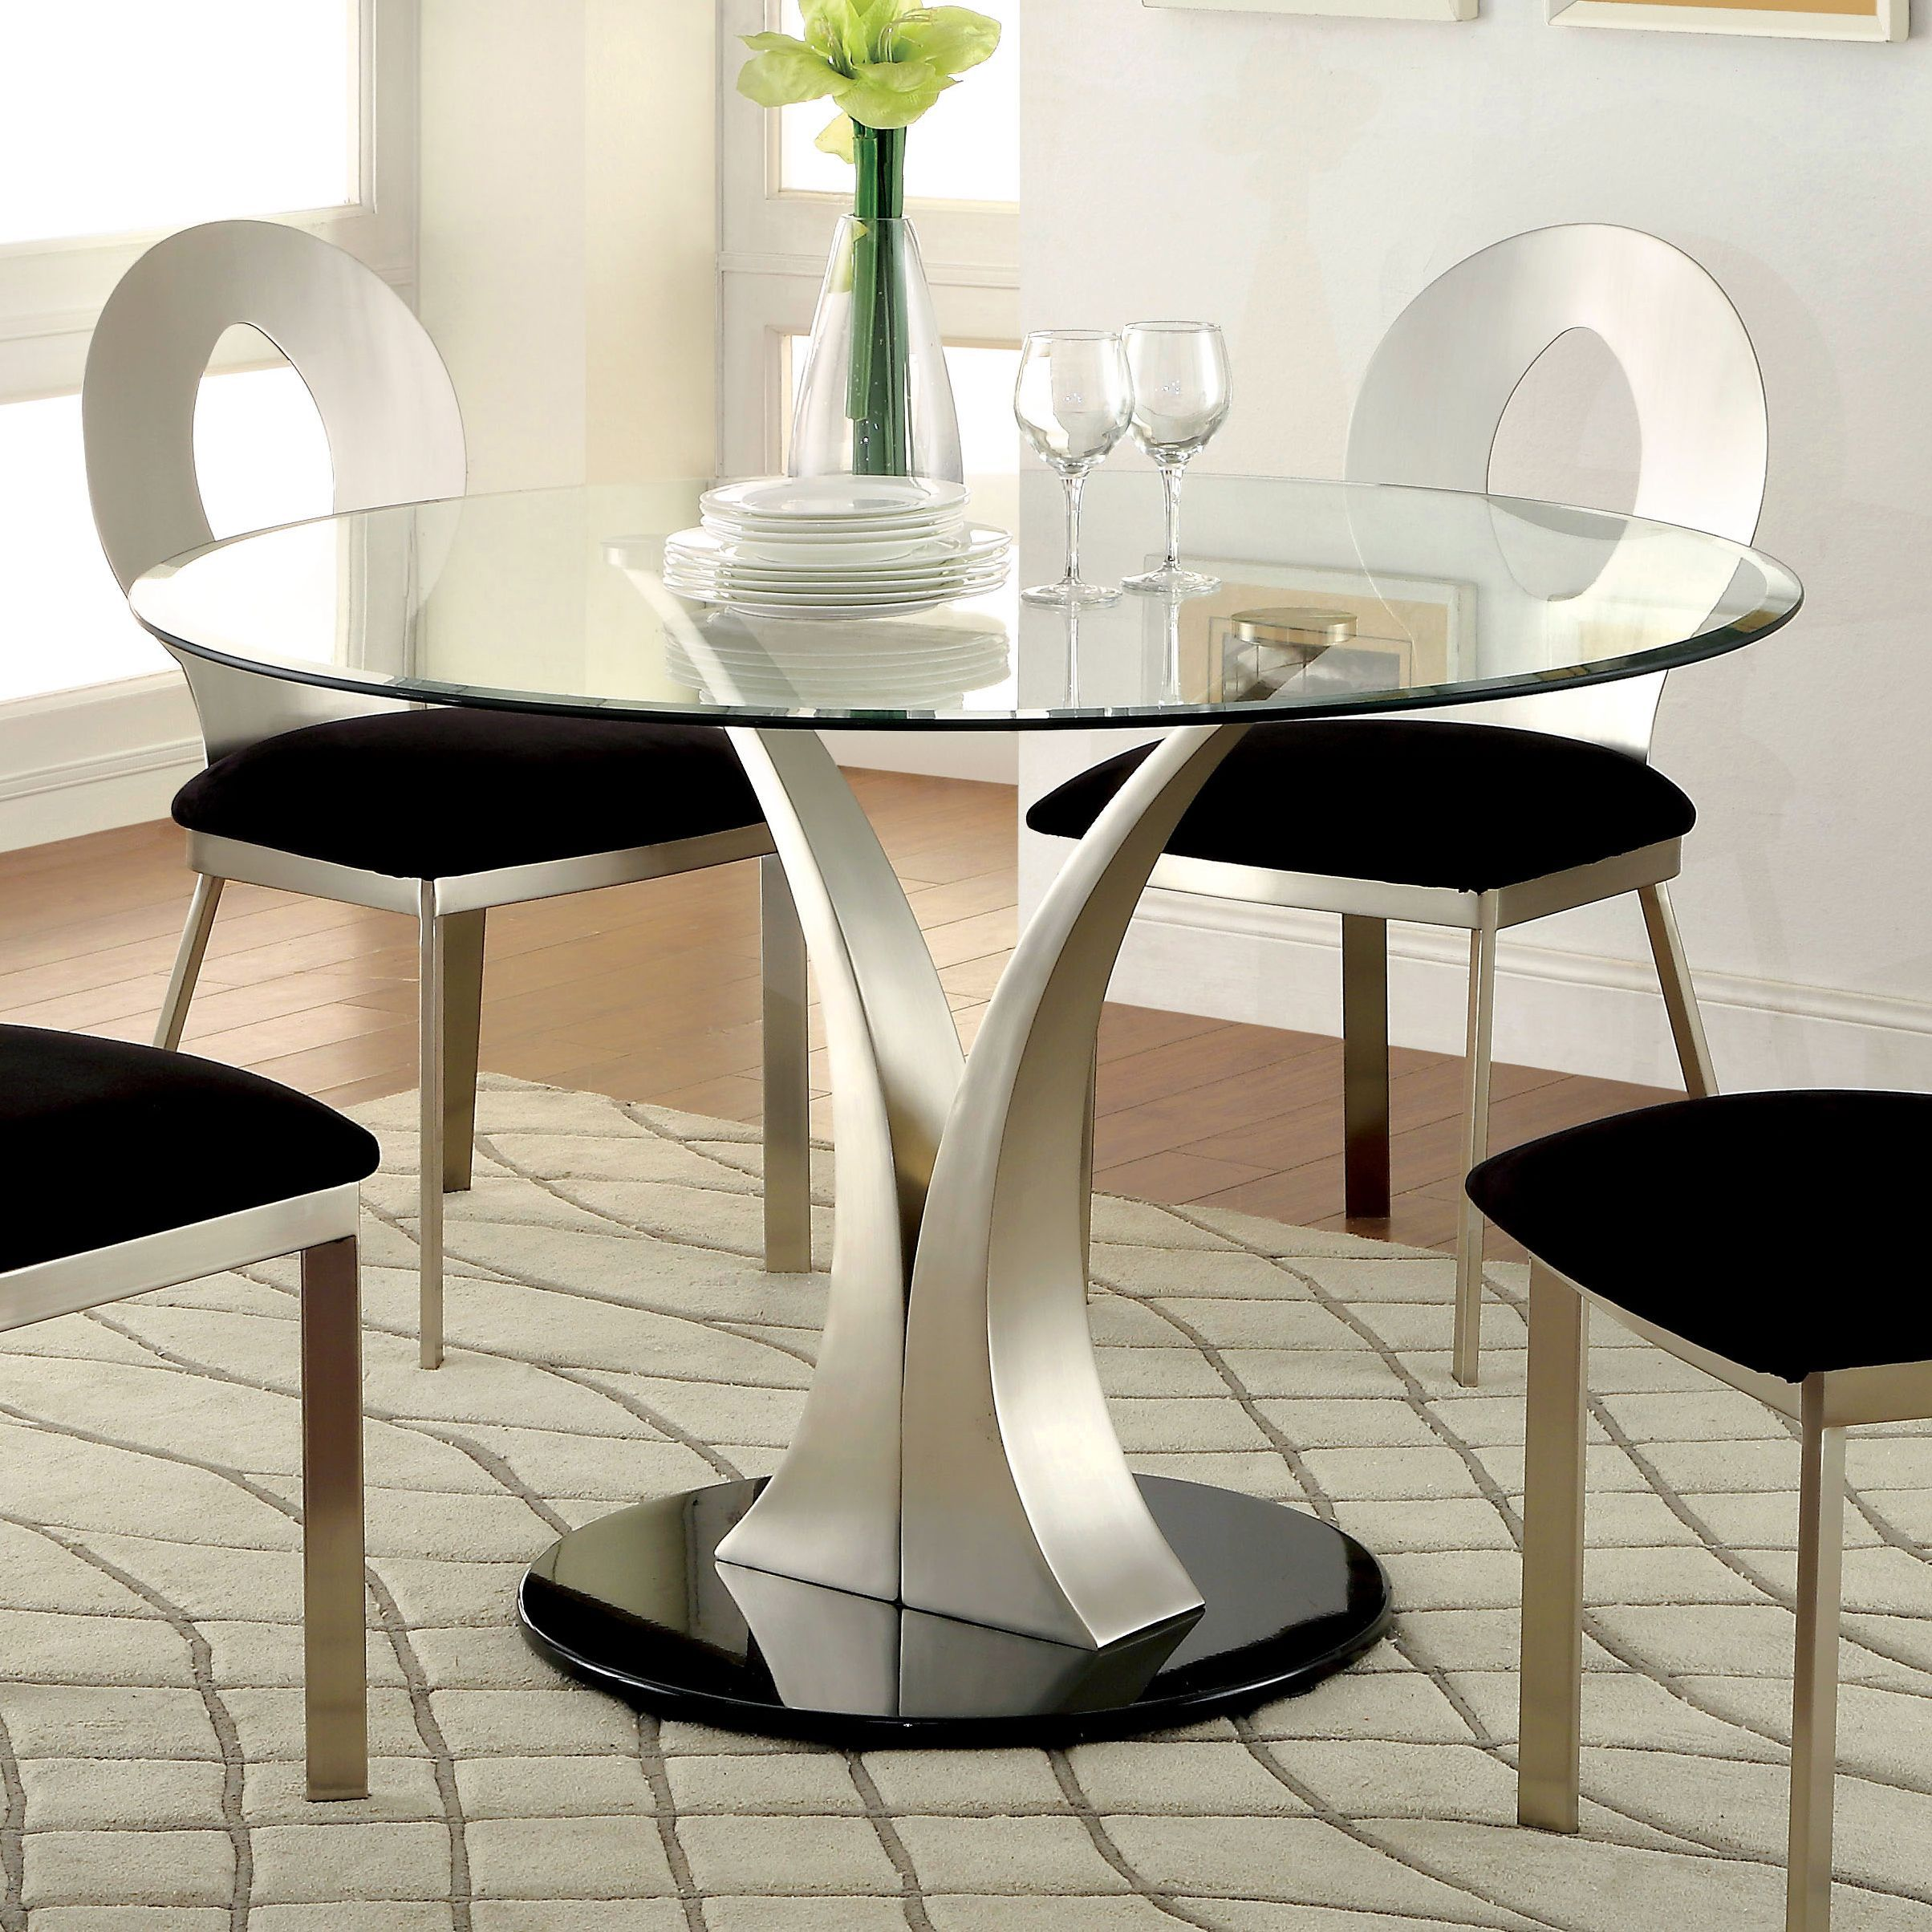 Sculpture Iii Contemporary Silver Dining Table By Foa